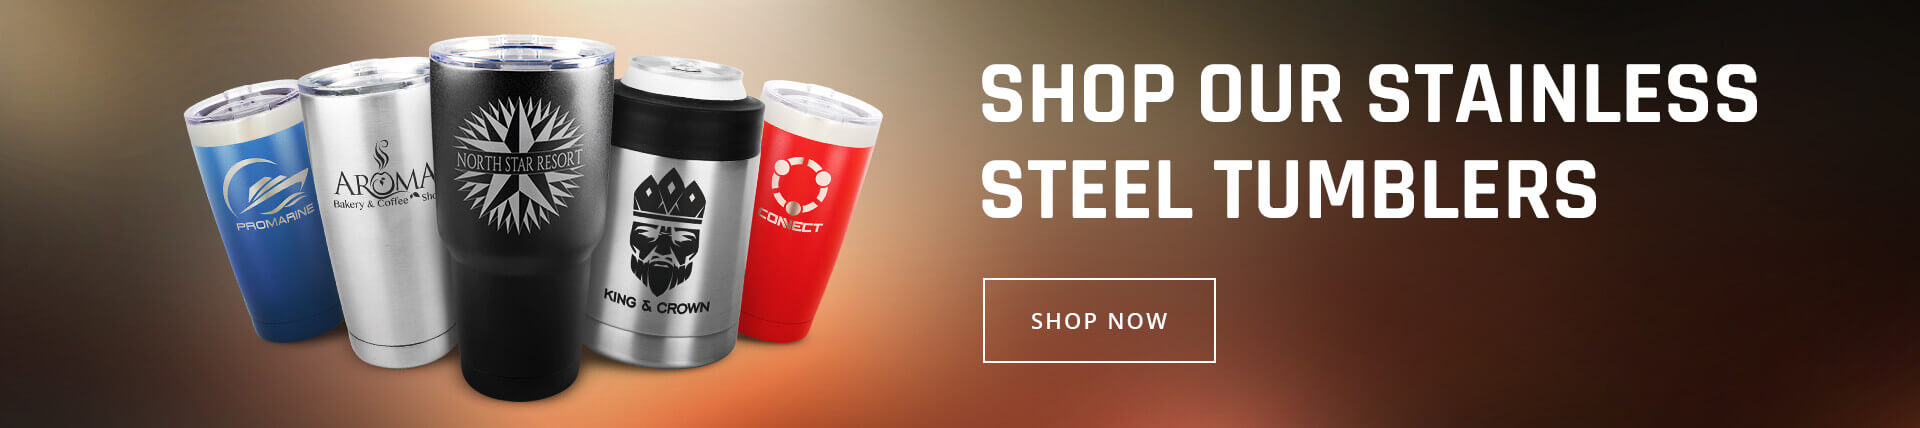 Stainless Tumblers Banner